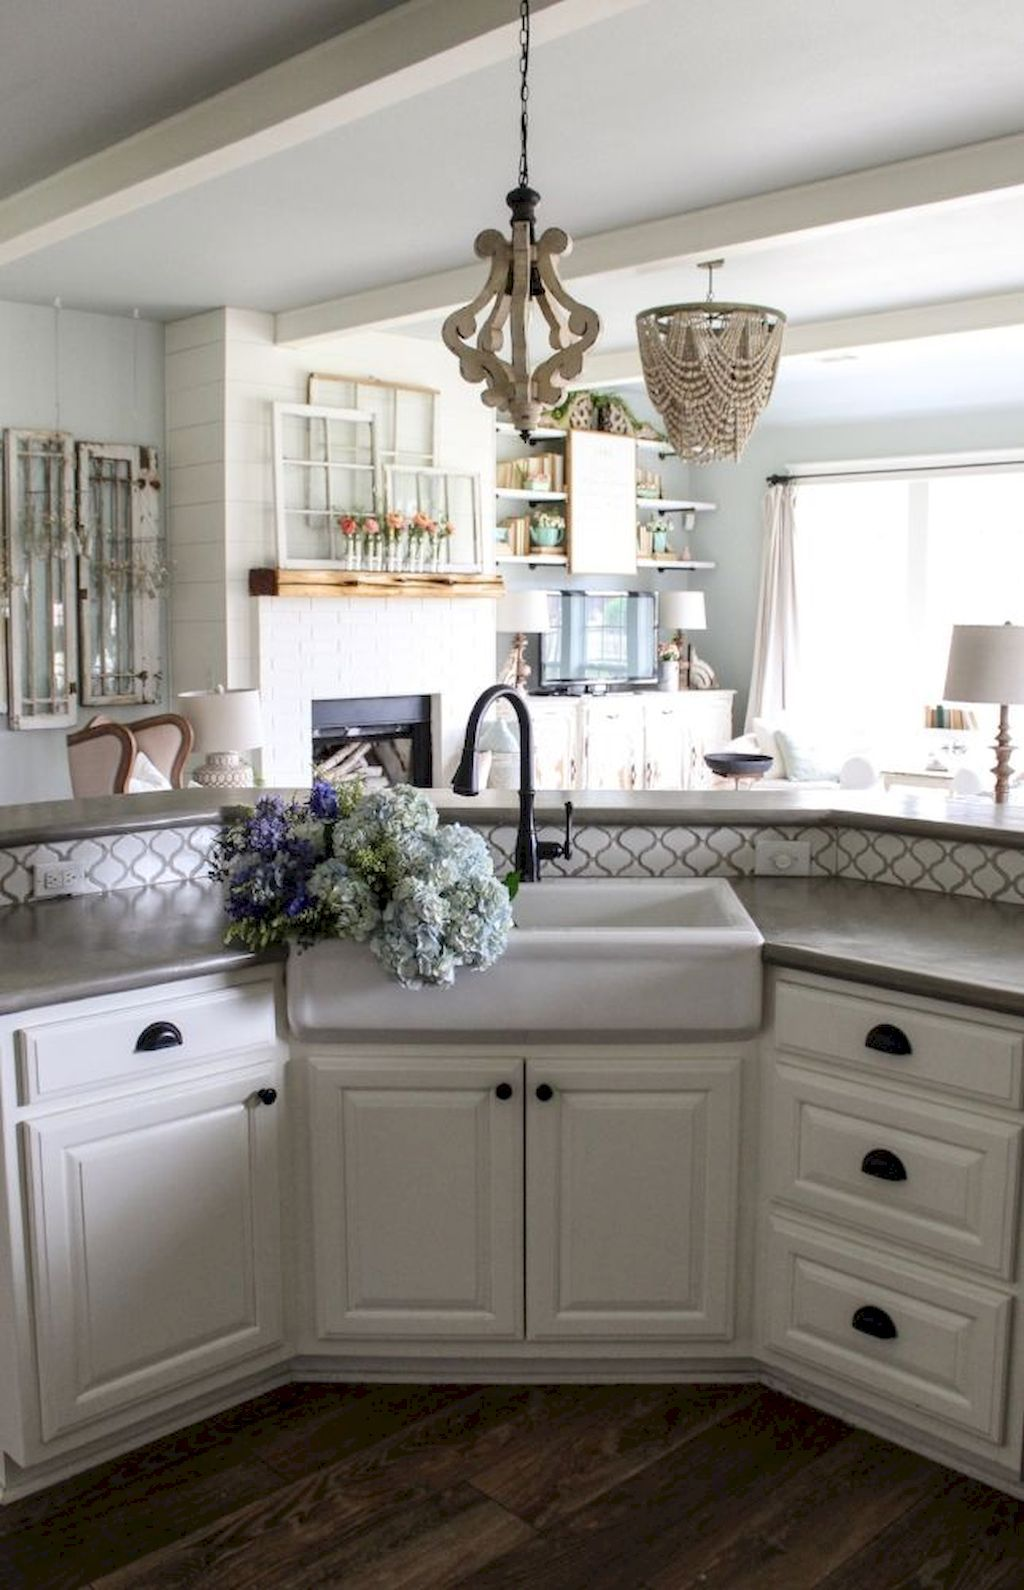 Double Farm Sinks For Kitchens